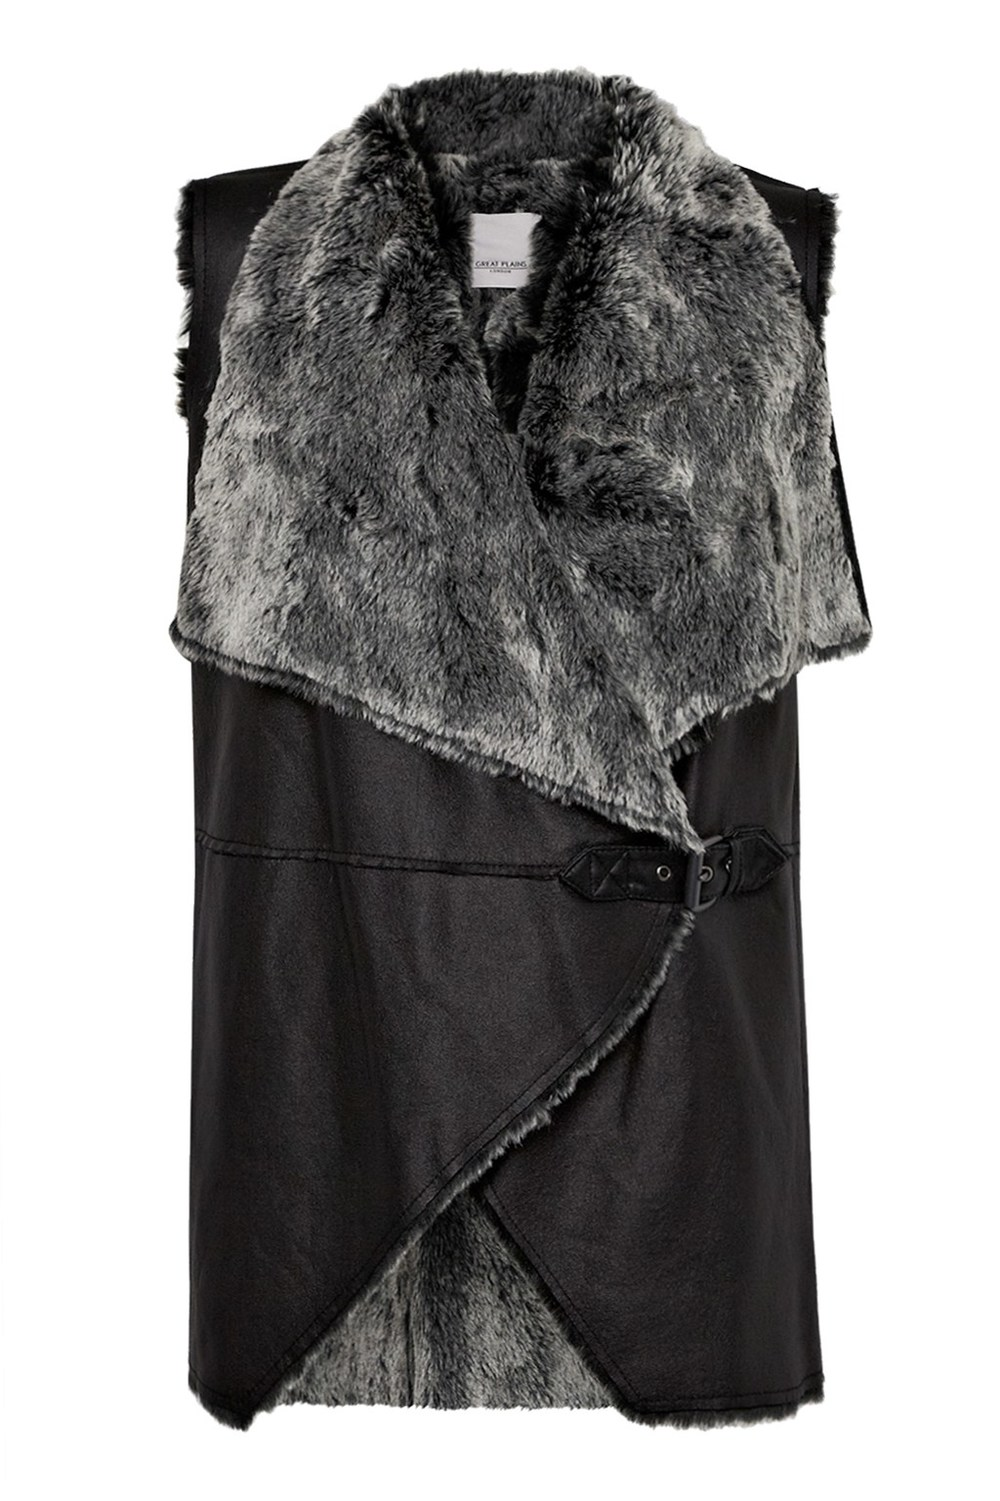 Great Plains, Baa-Baa Faux Fur Gilet £100